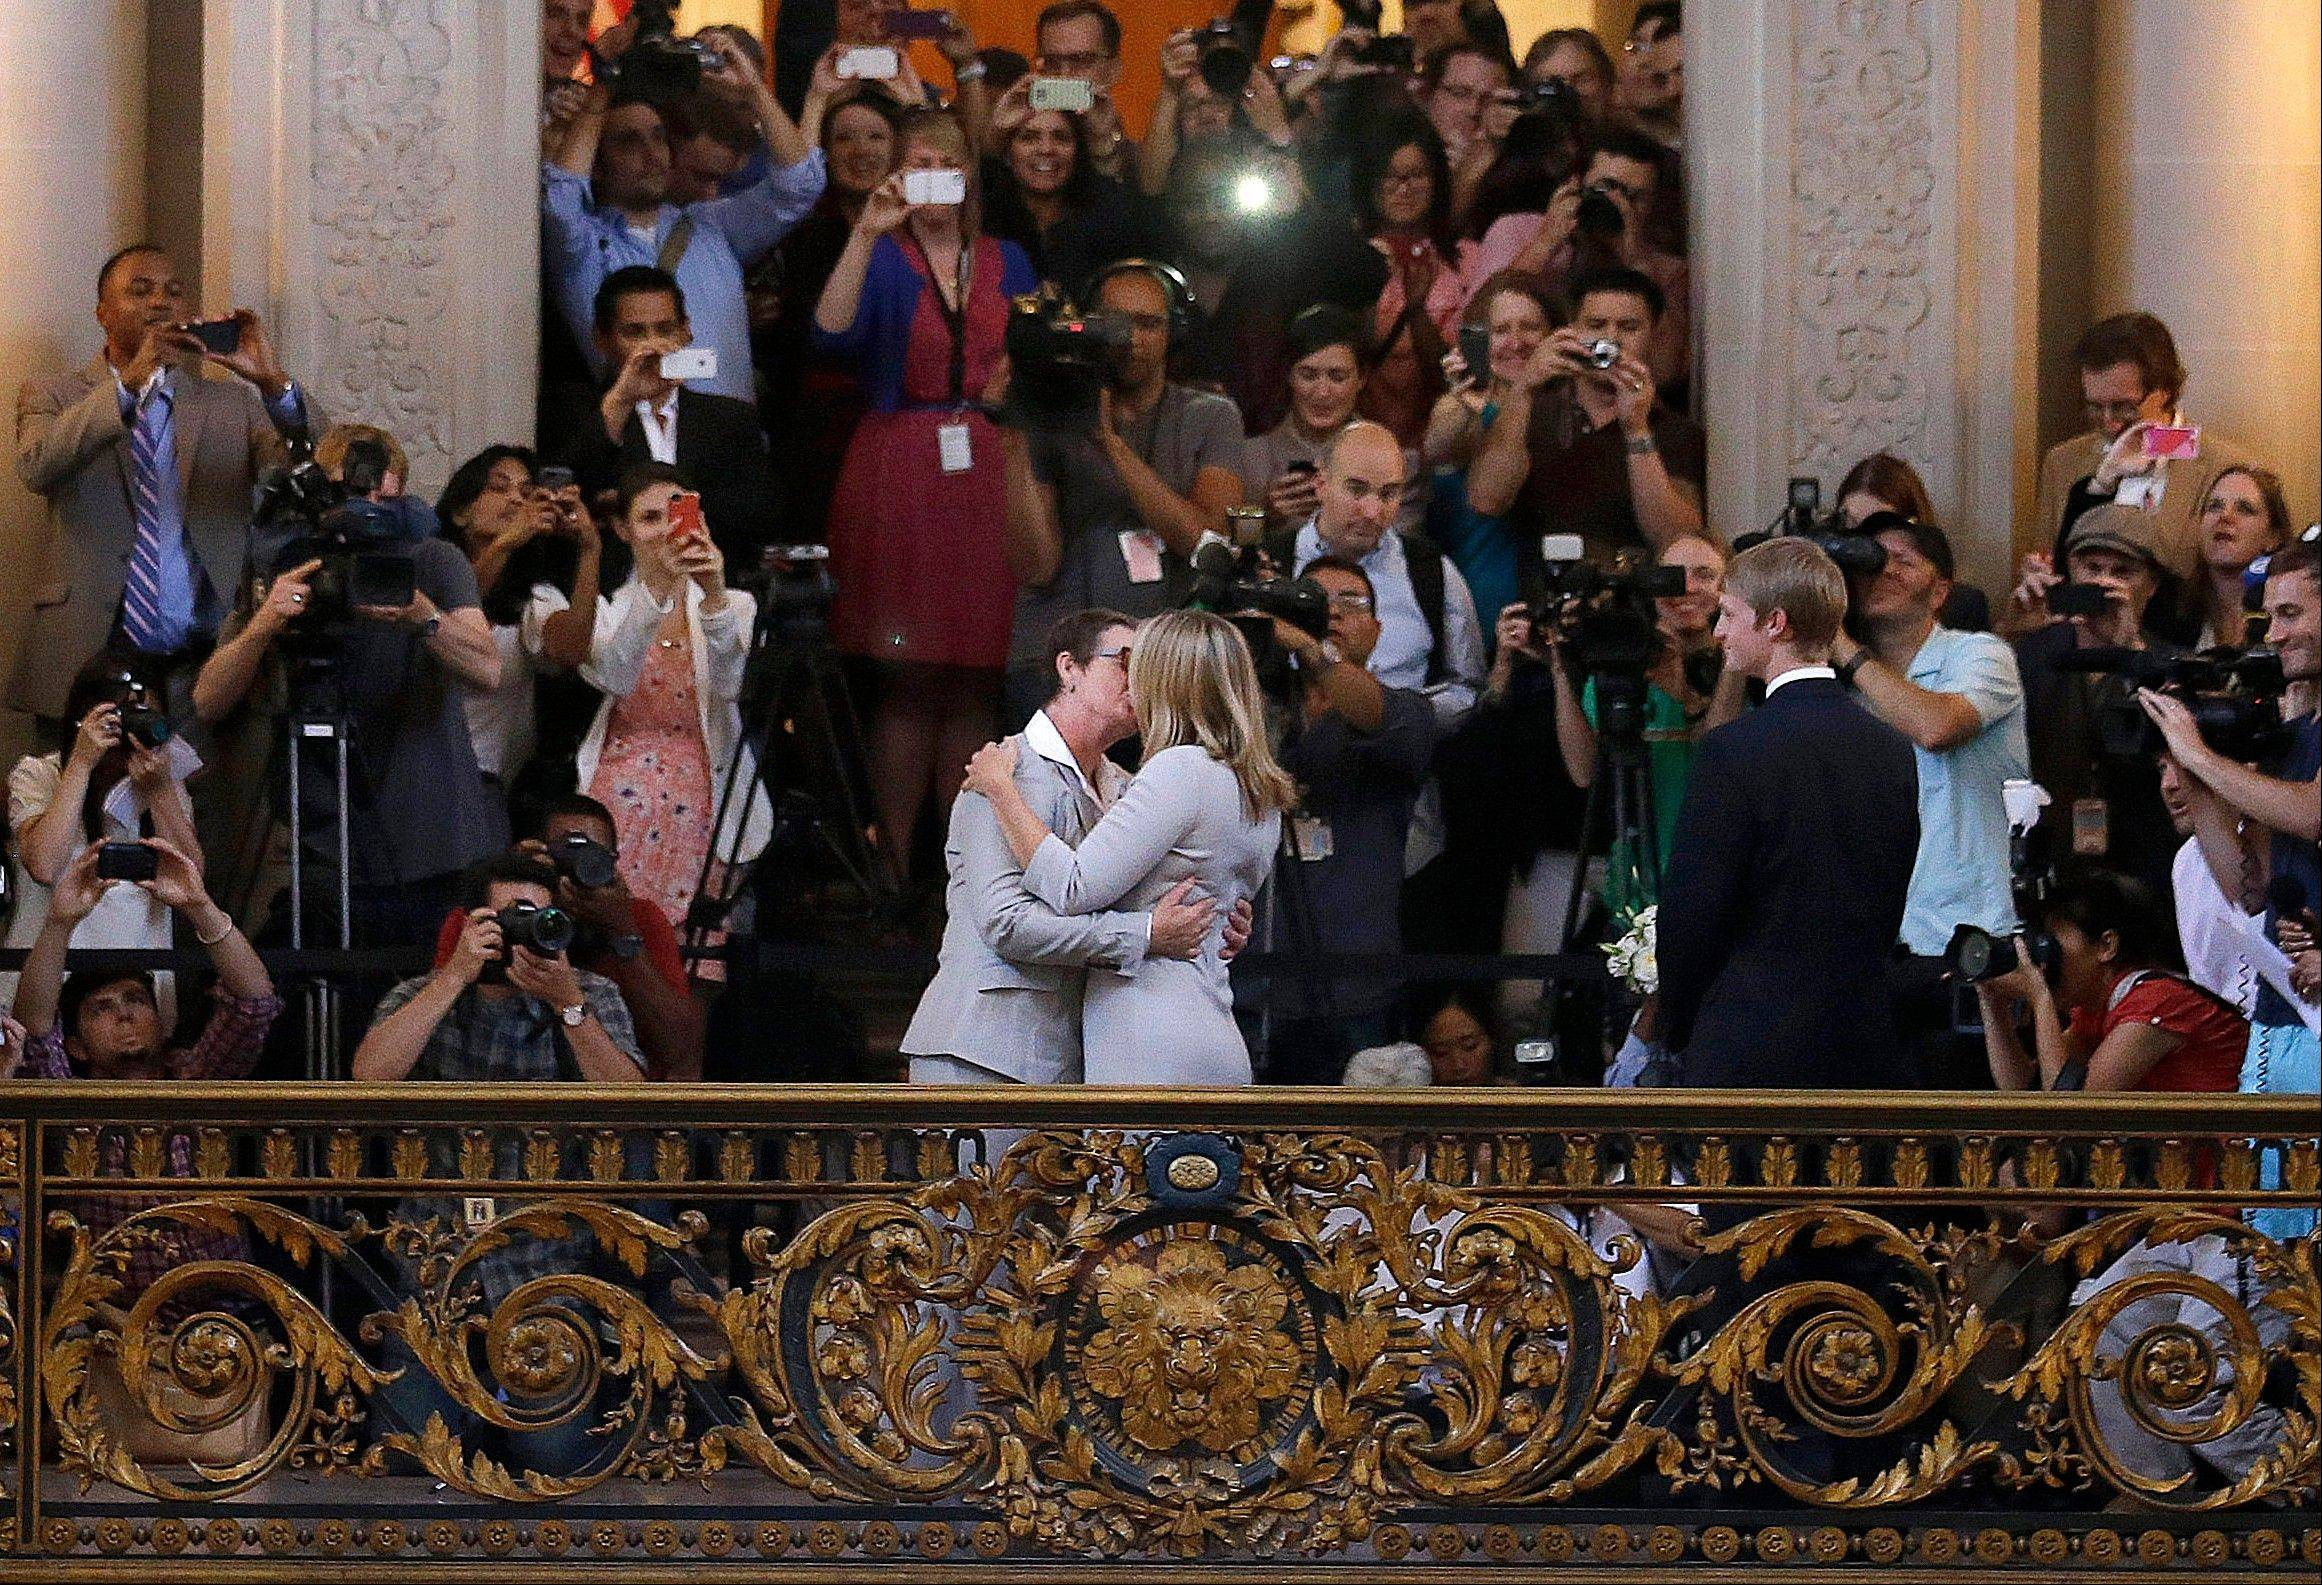 Kris Perry, foreground left, kisses Sandy Stier Friday as they are married at City Hall in San Francisco.